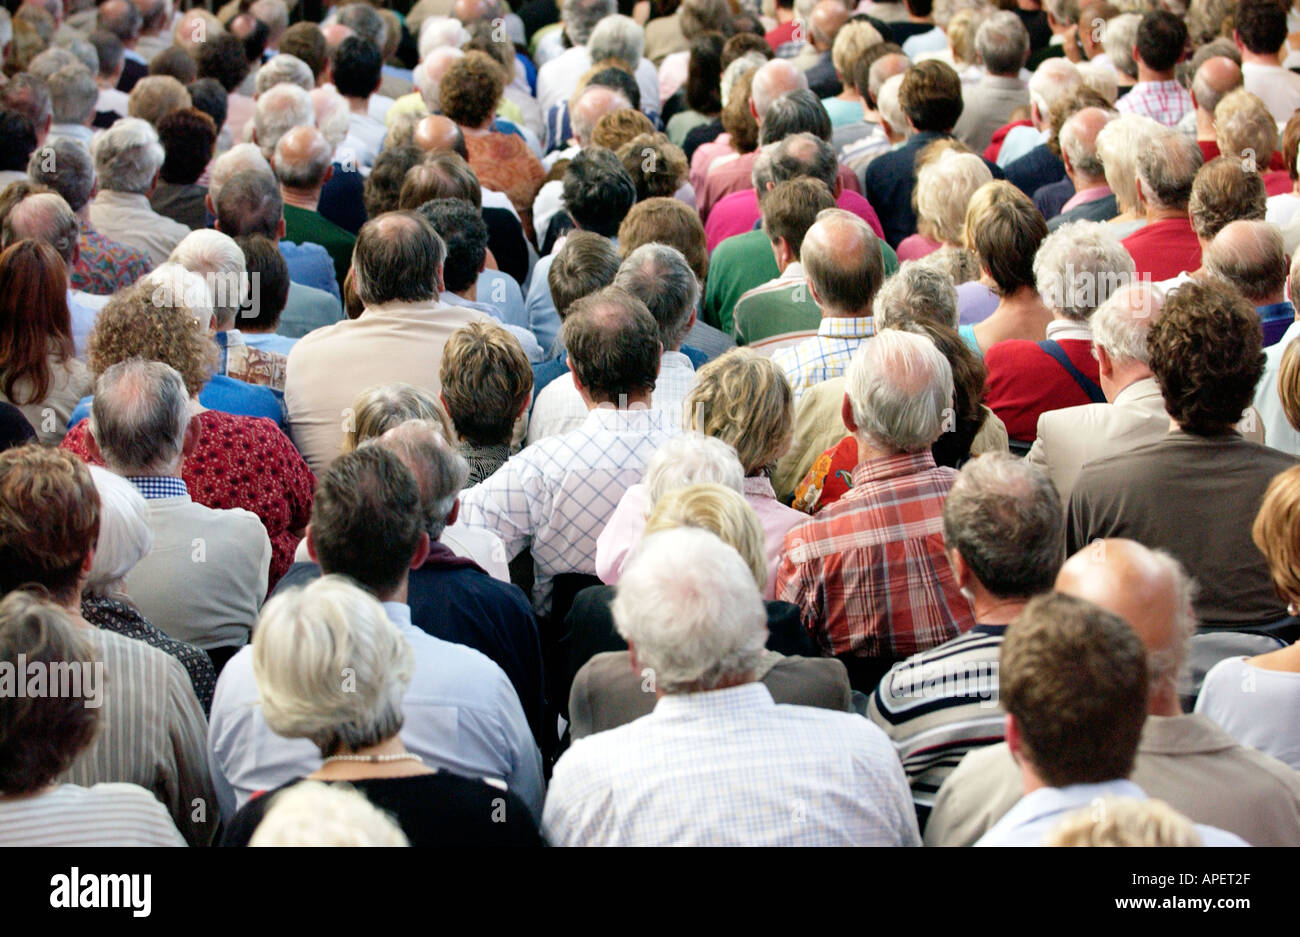 Audience listening to a performance at the annual Brecon Jazz Festival Powys Wales UK - Stock Image